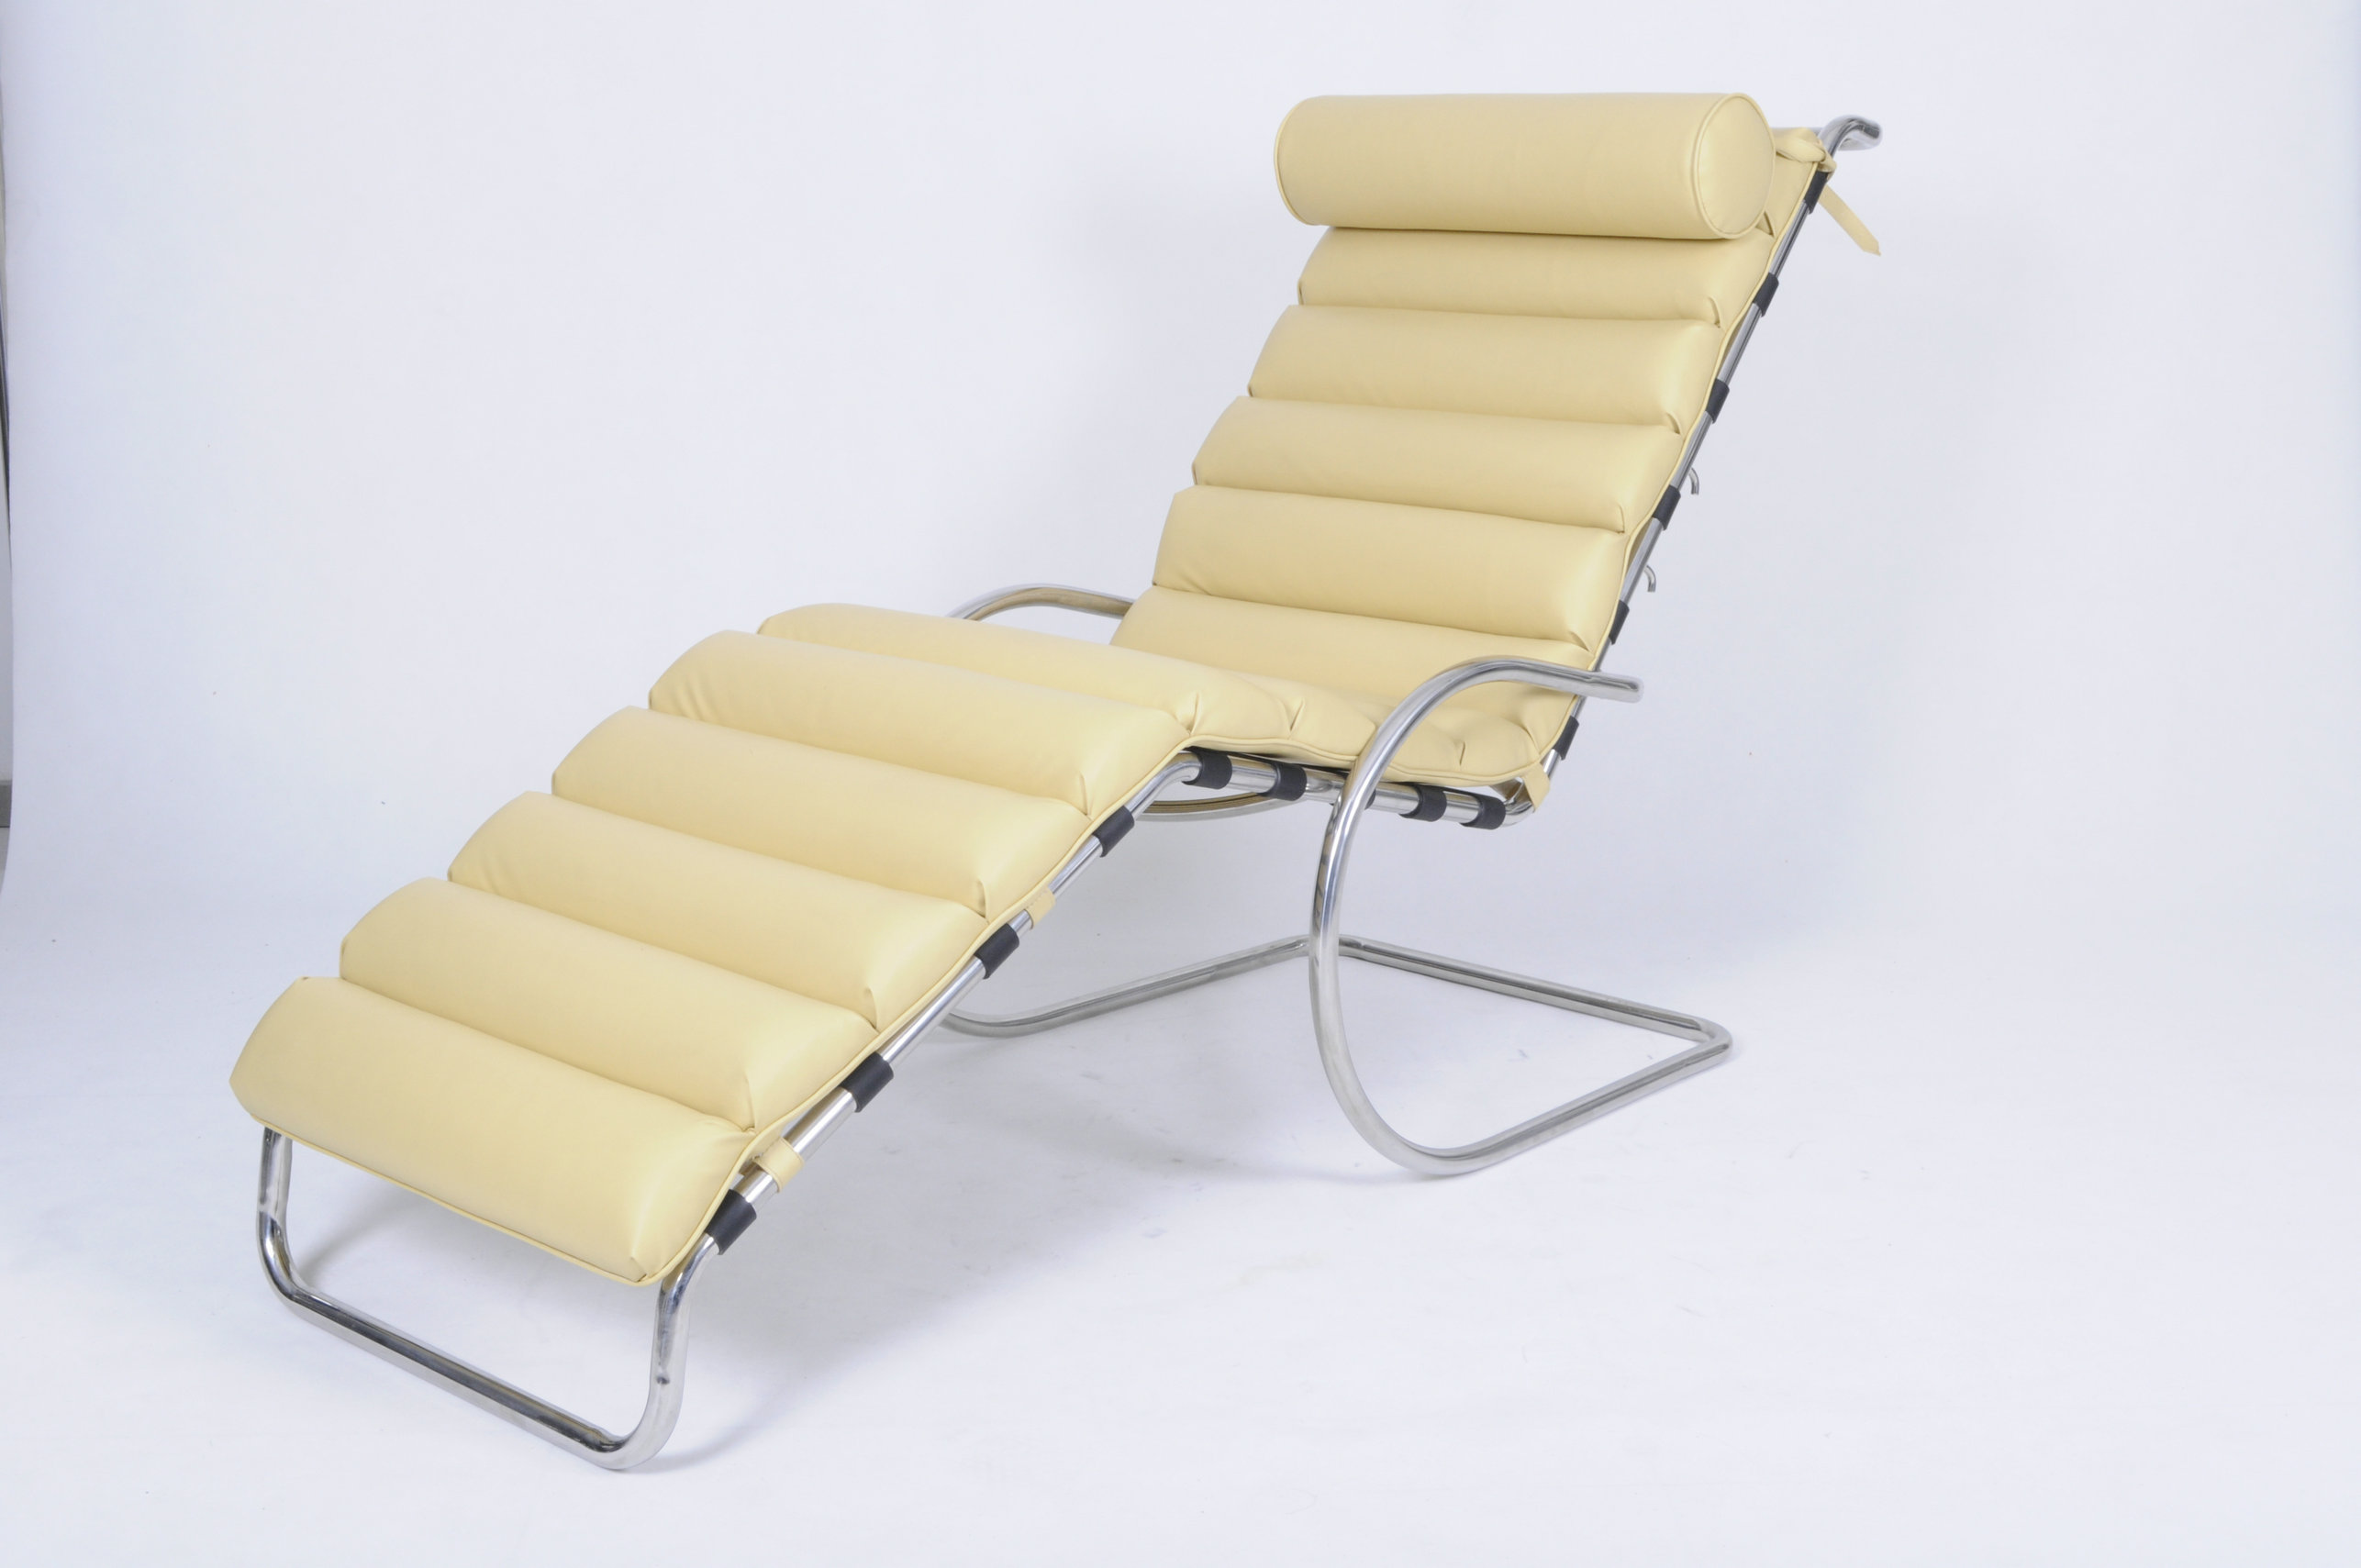 MR Adjustable chaise lounge chair